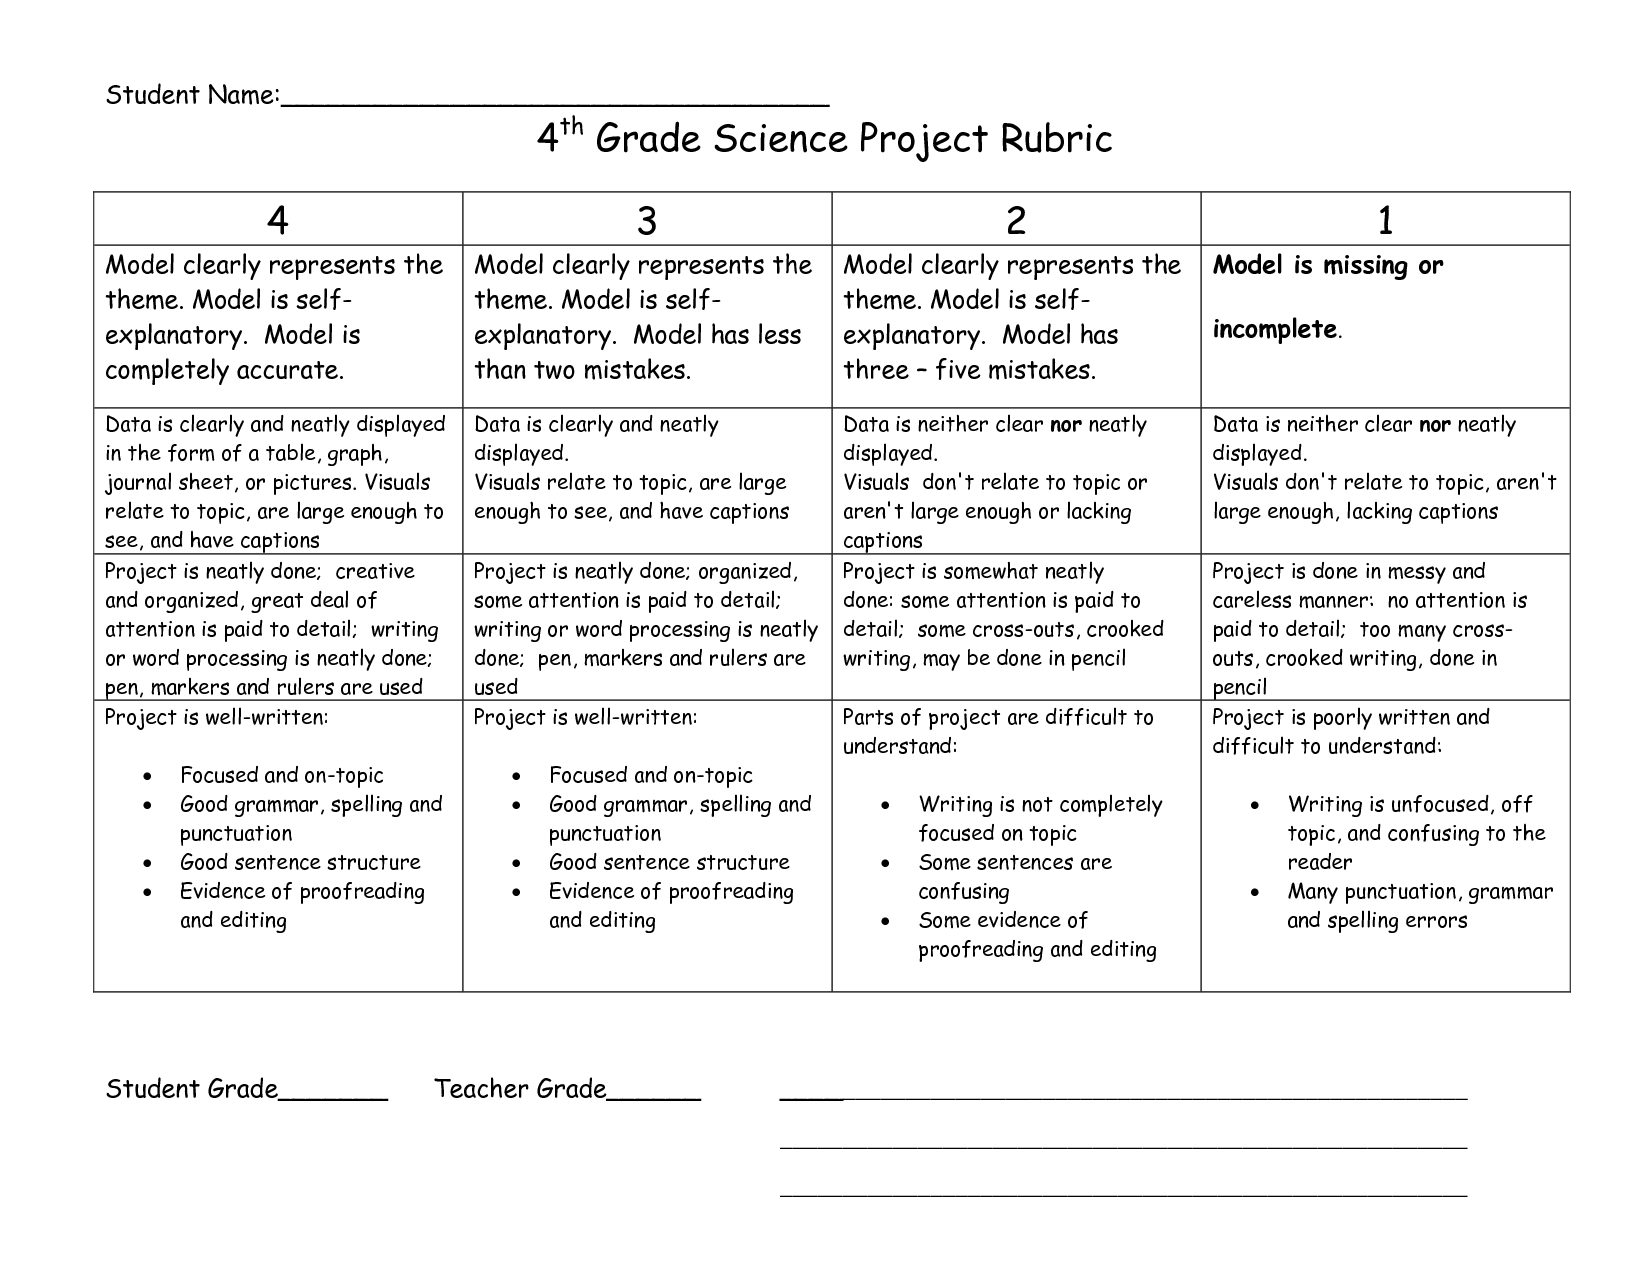 95d456bd01417e6a8c484cae7b68a5a1  Th Grade Science Fair Project Proposal on science fair projects about skittles, science projects for 4th graders examples, science fair projects girly-girl, science project board layout, winning science fair projects 2nd grade, science fair projects 5th, science fair projects results sample, science fair projects preschool, science fair projects for 12th graders, good science fair projects 6th grade, science fair projects 1st, crystal science projects 5th grade, science fair projects health, science fair projects kindergarten, science fair projects 9th grade, science fair projects fish, science fair projects 10th grade, cool science projects 5th grade, science fair projects that are easy, science fair for 4th grade,